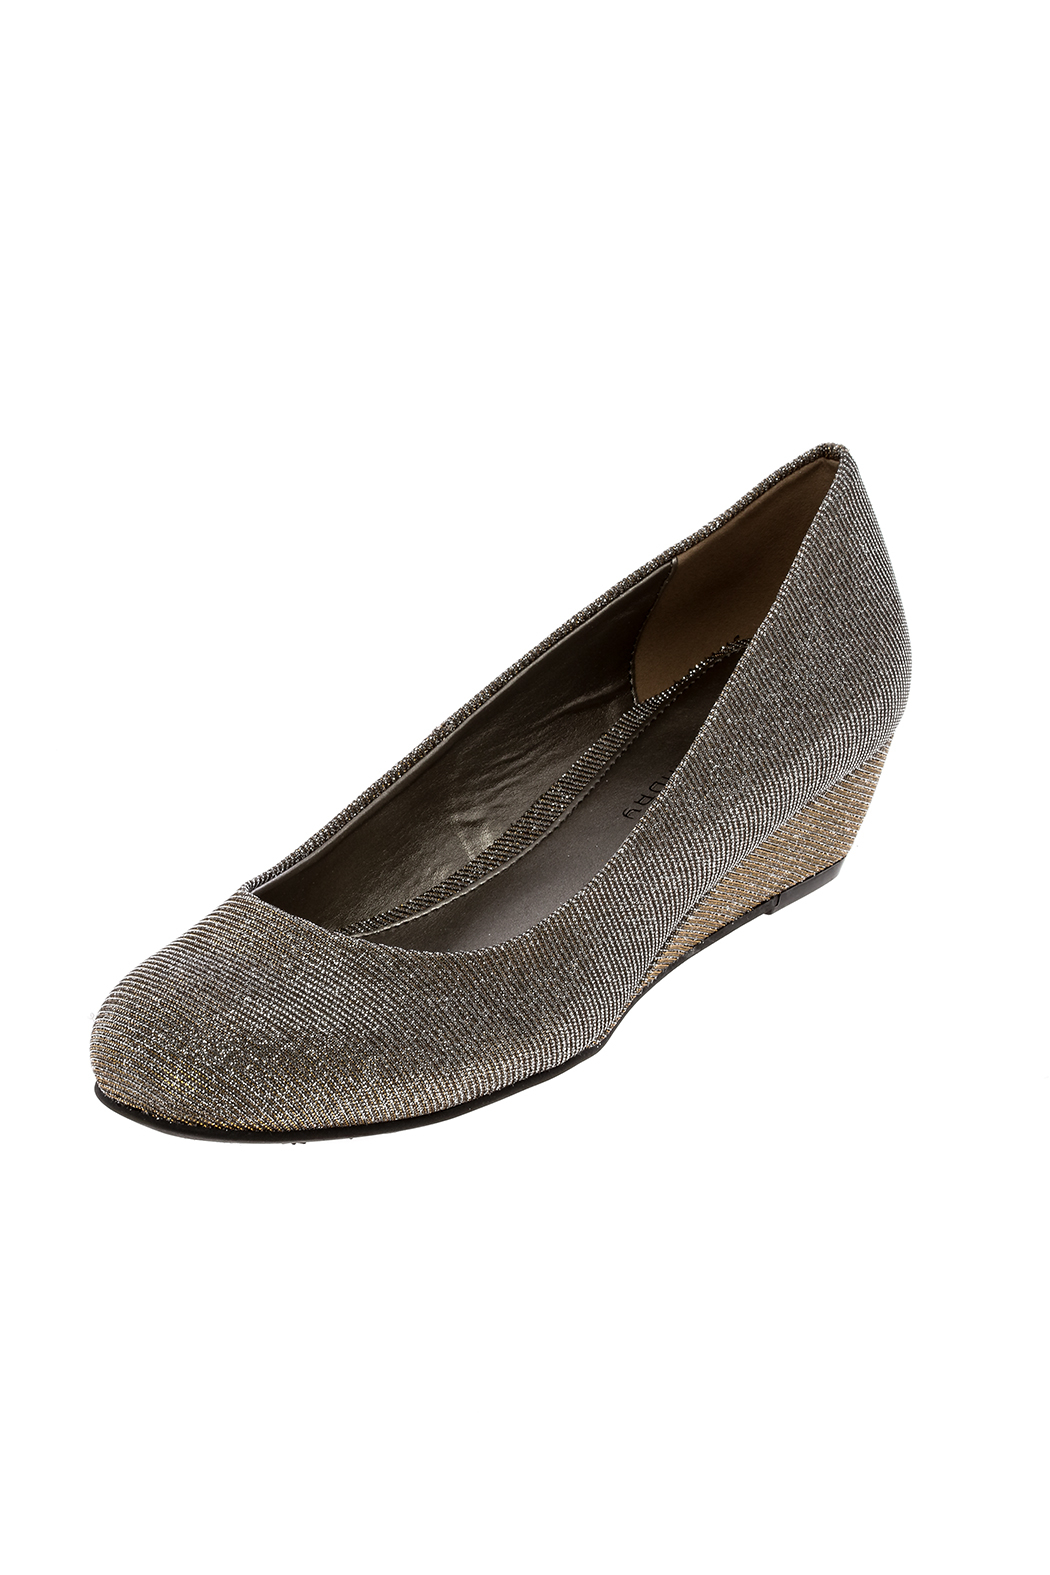 CL by Chinese Laundry Glitter Pump Wedge - Main Image